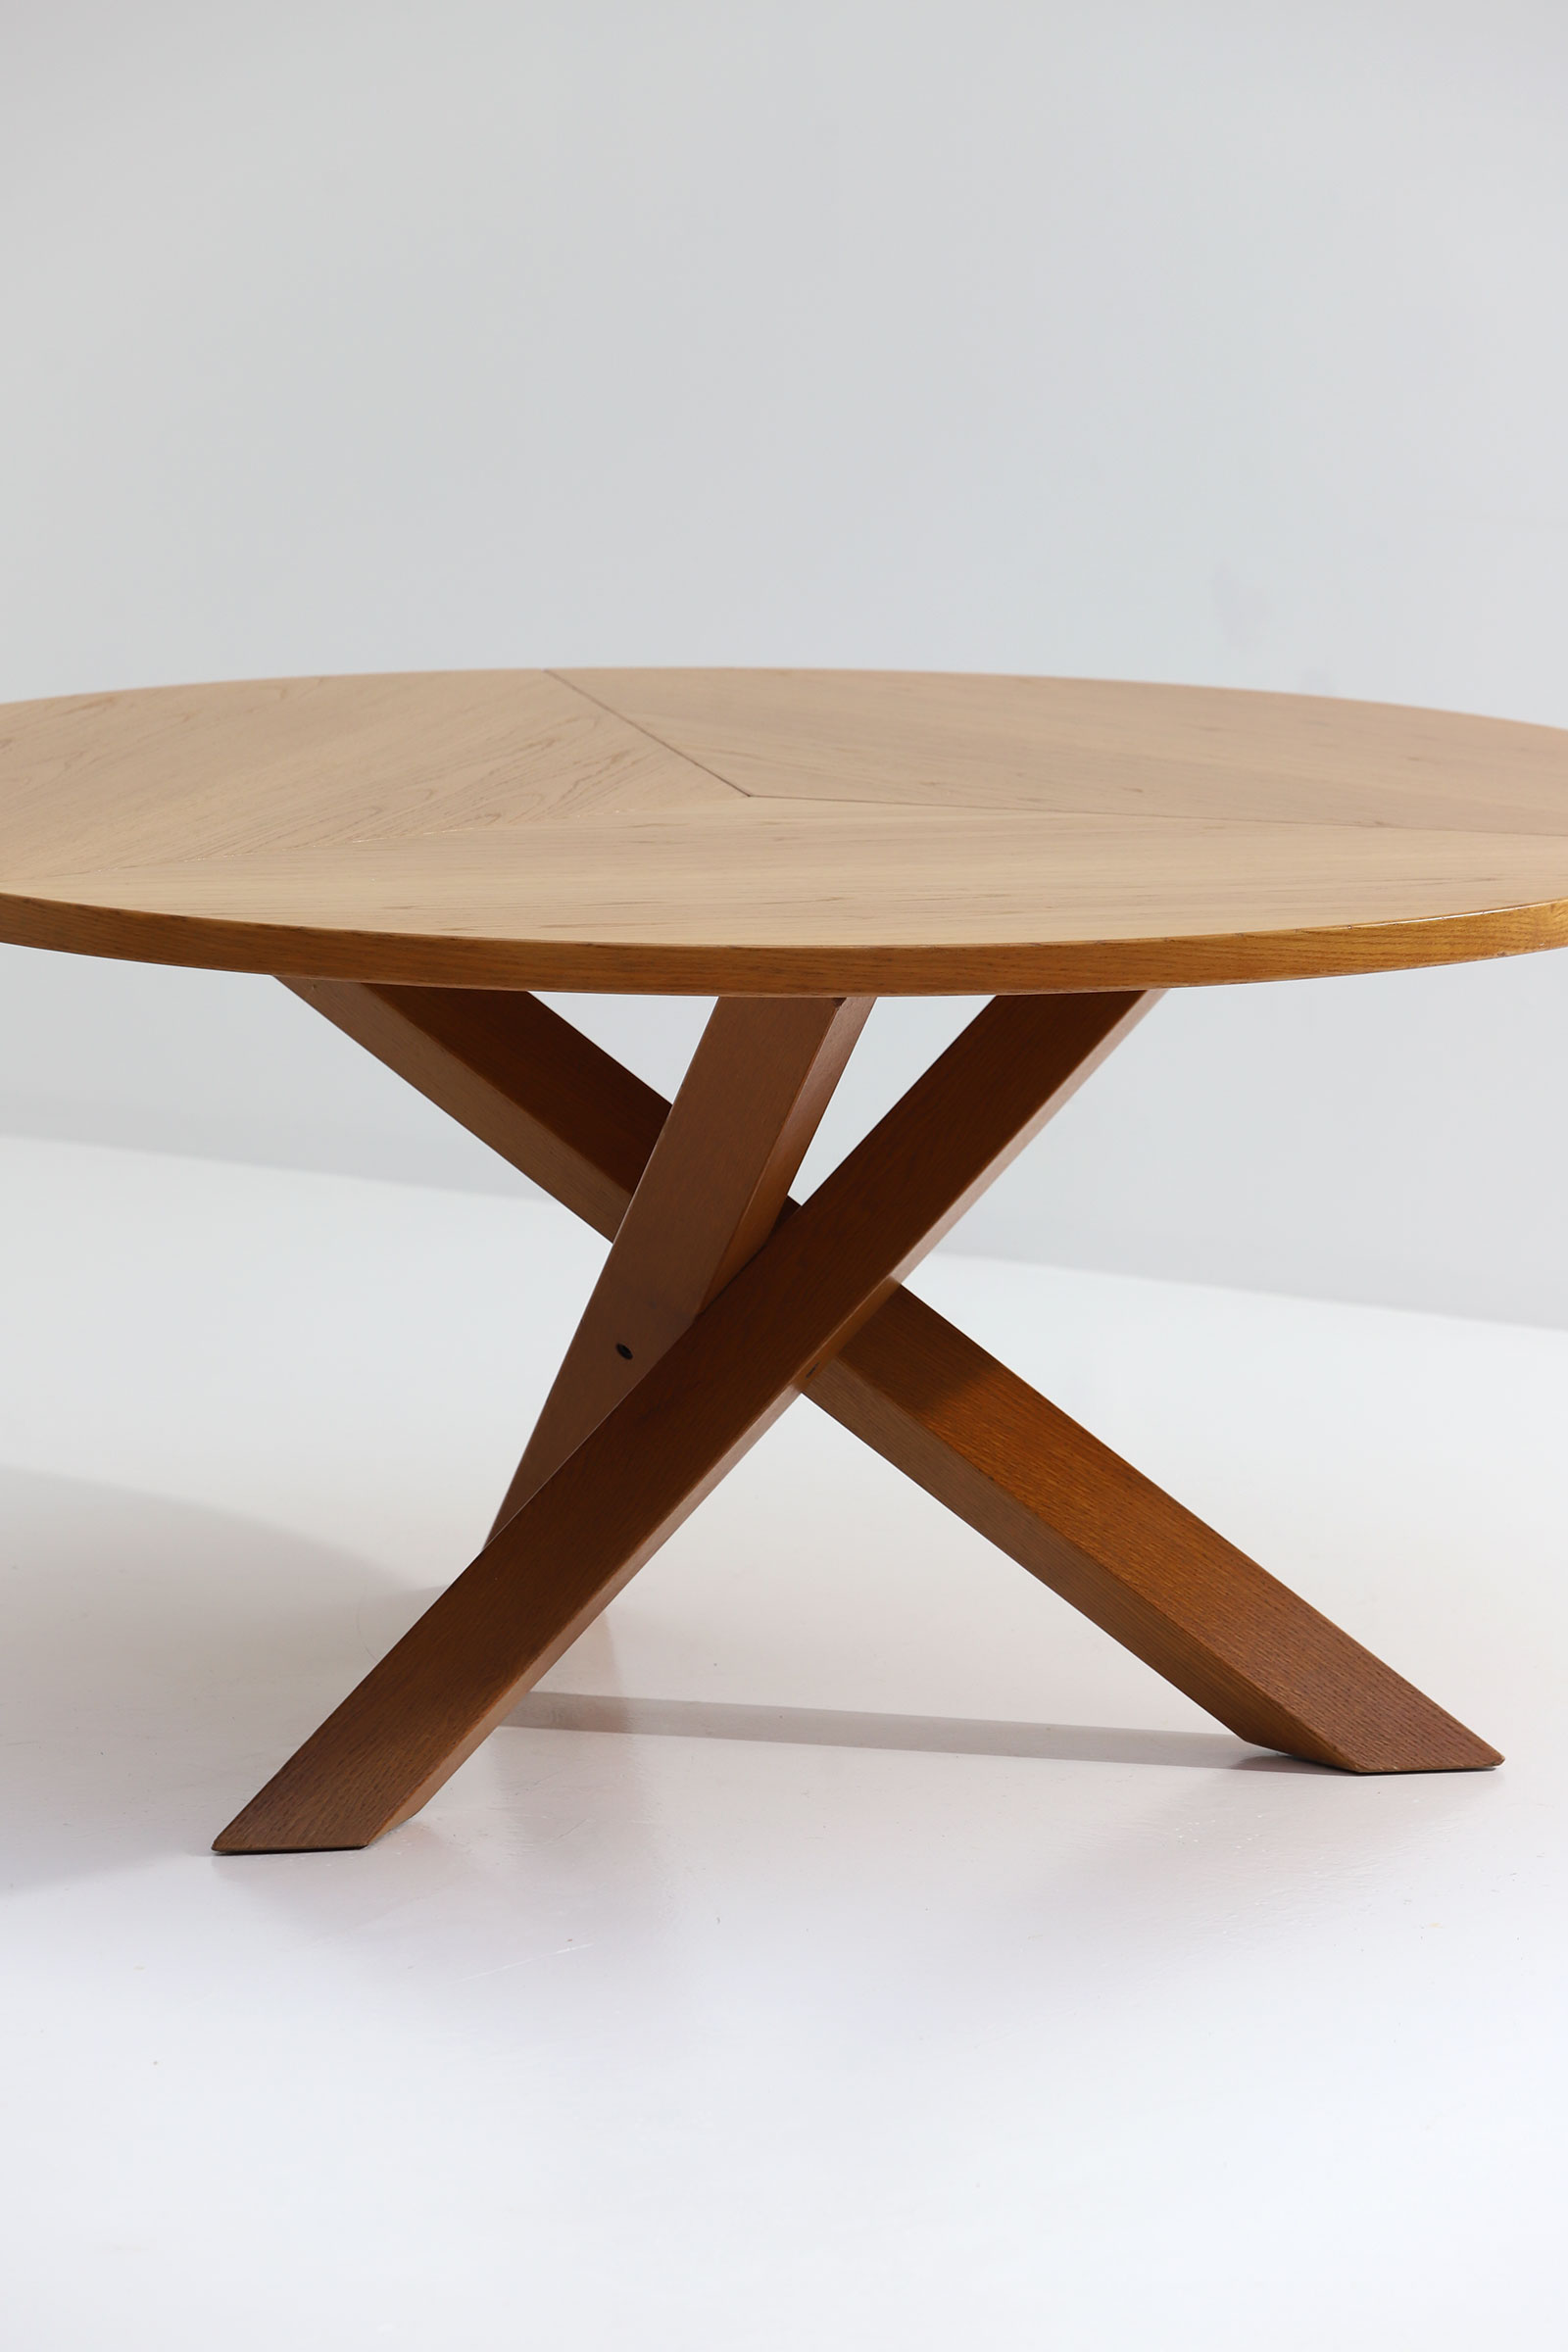 Gerard Geytenbeek Dining Table for AZS The Netherlandsimage 2